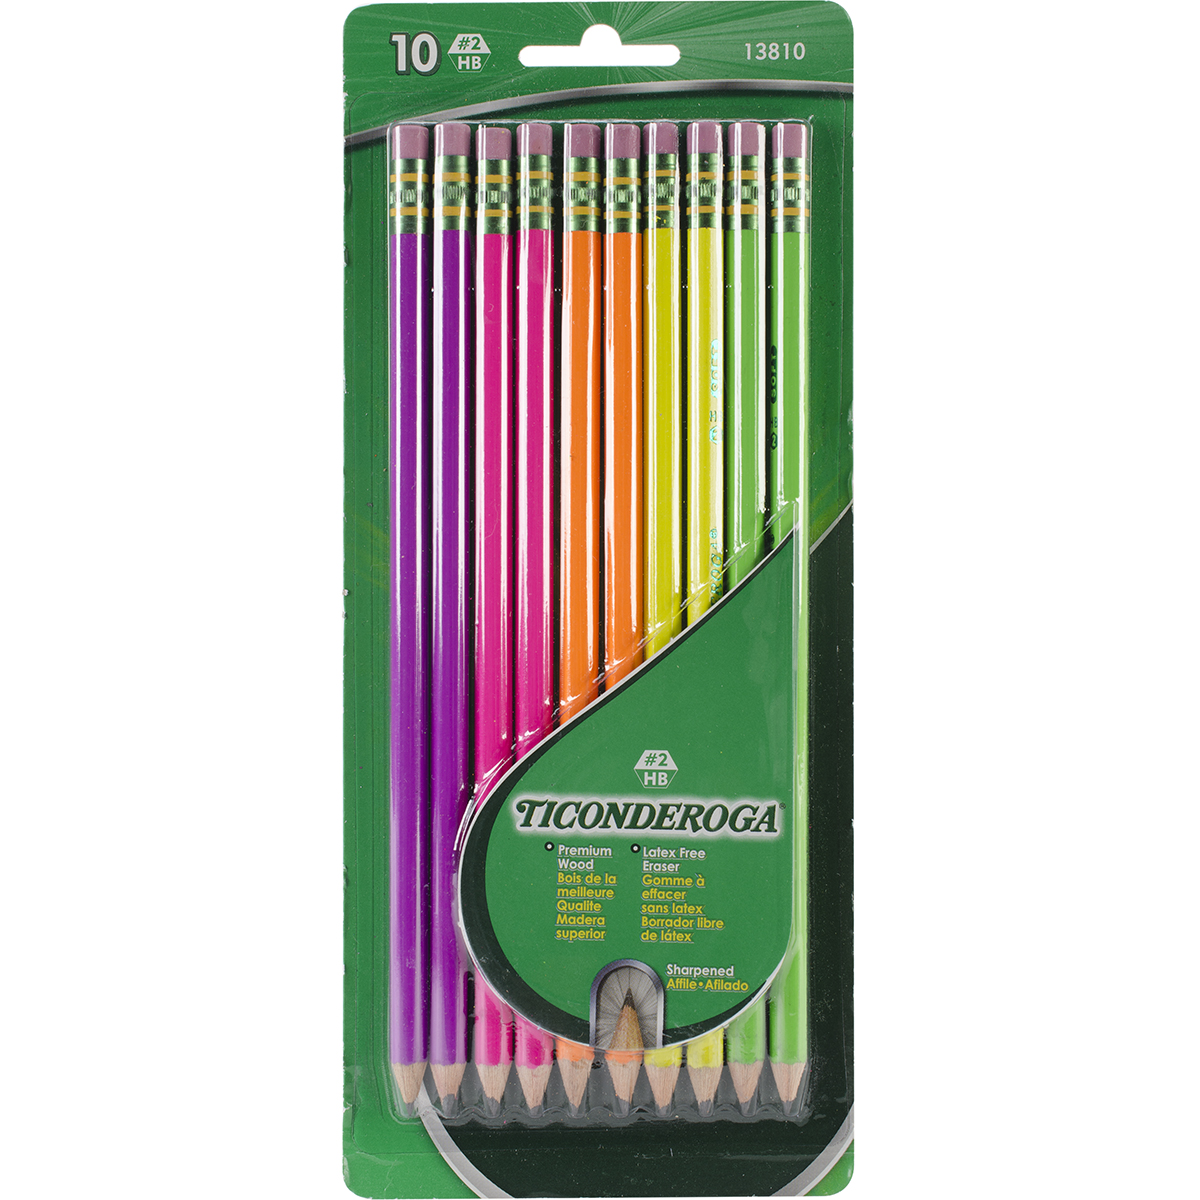 Ticonderoga #2 Pencils 10/Pkg-Assorted Neon